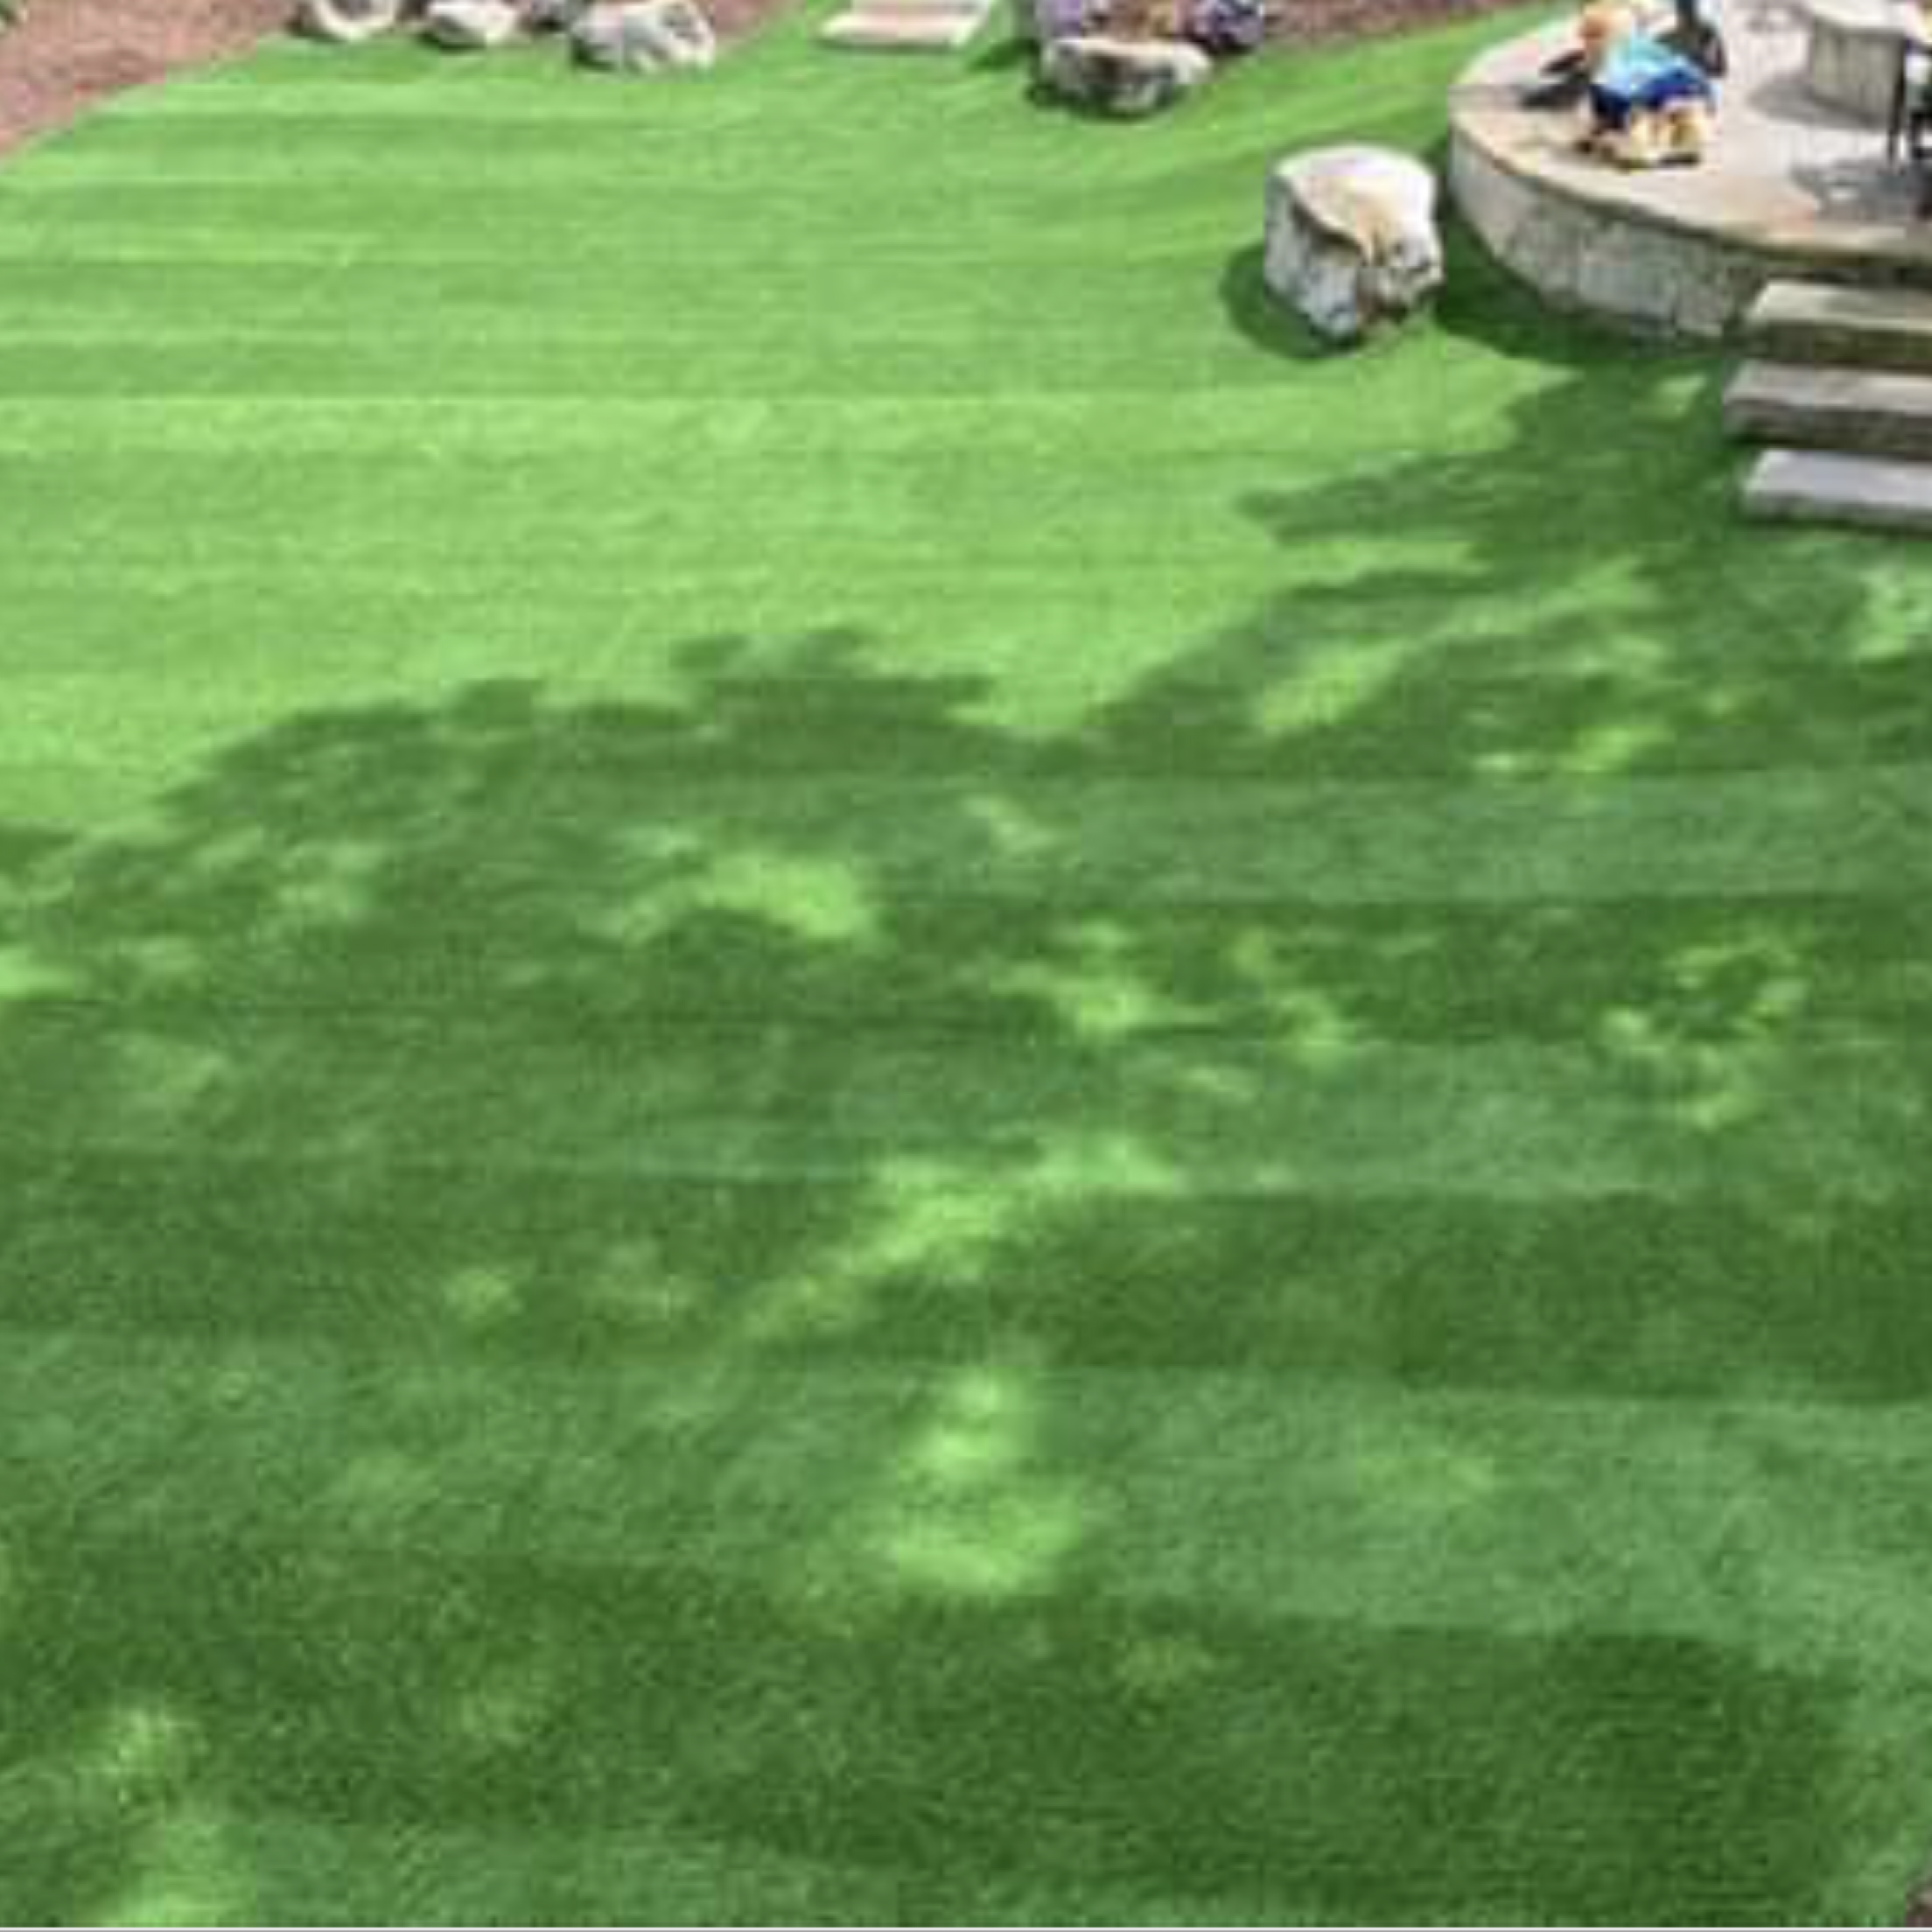 C Blade-92 artificial grass,artificial turf,artificial lawn,artificial grass rug,artificial grass installation,artificial grass,fake grass,synthetic grass,grass carpet,artificial grass rug,fake grass for yard,backyard turf,turf backyard,turf yard,fake grass for backyard